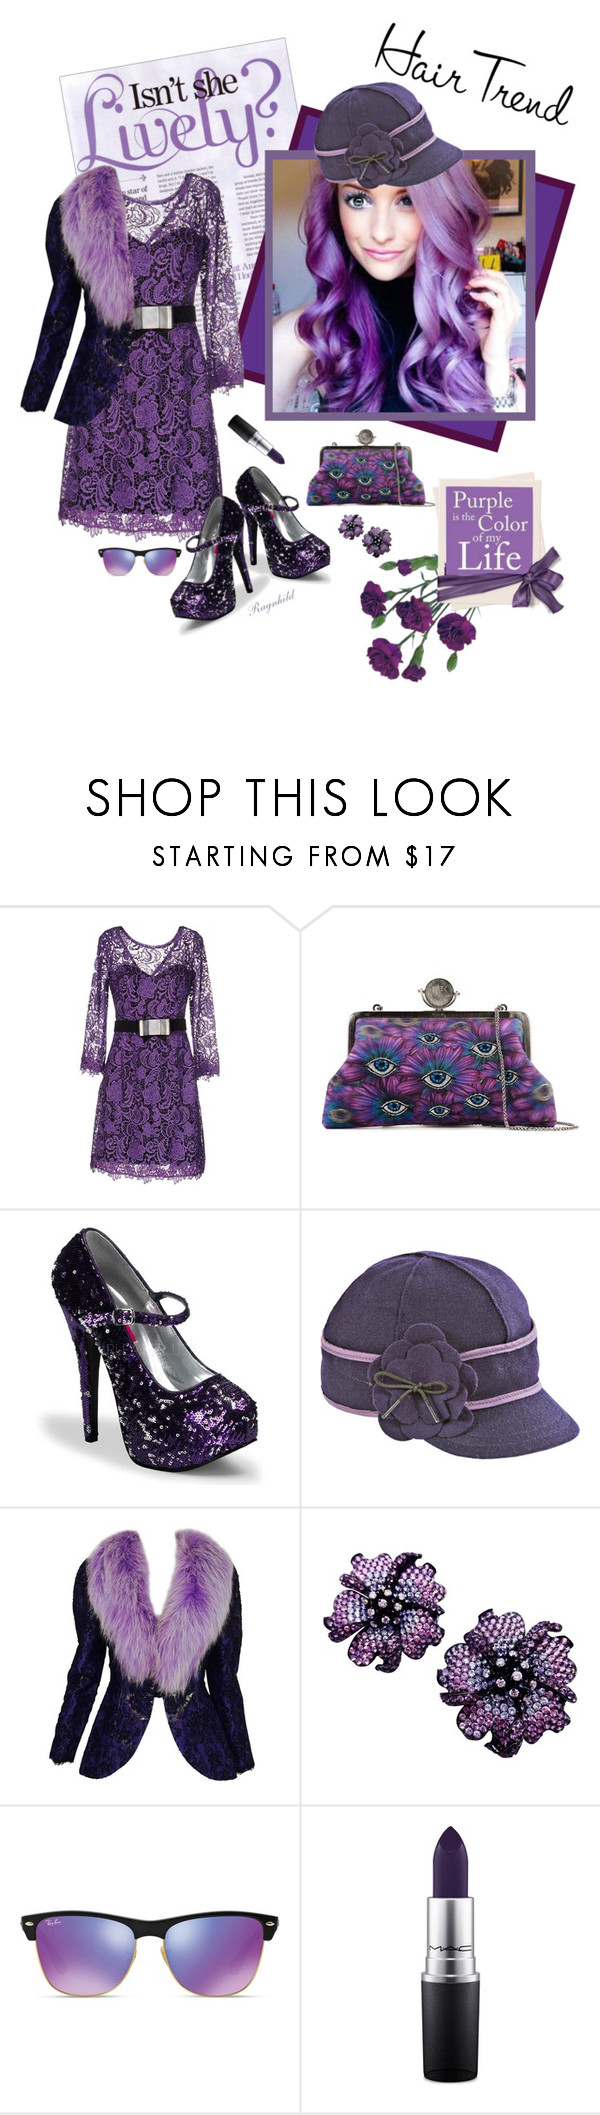 """""""Matchy- Matchy Hair ,Purple for me!"""" by ragnh-mjos ❤ liked on Polyvore featuring beauty, Maria Grazia Severi, Sarah's Bag, Stormy Kromer, Adolfo, Ray-Ban and MAC Cosmetics"""